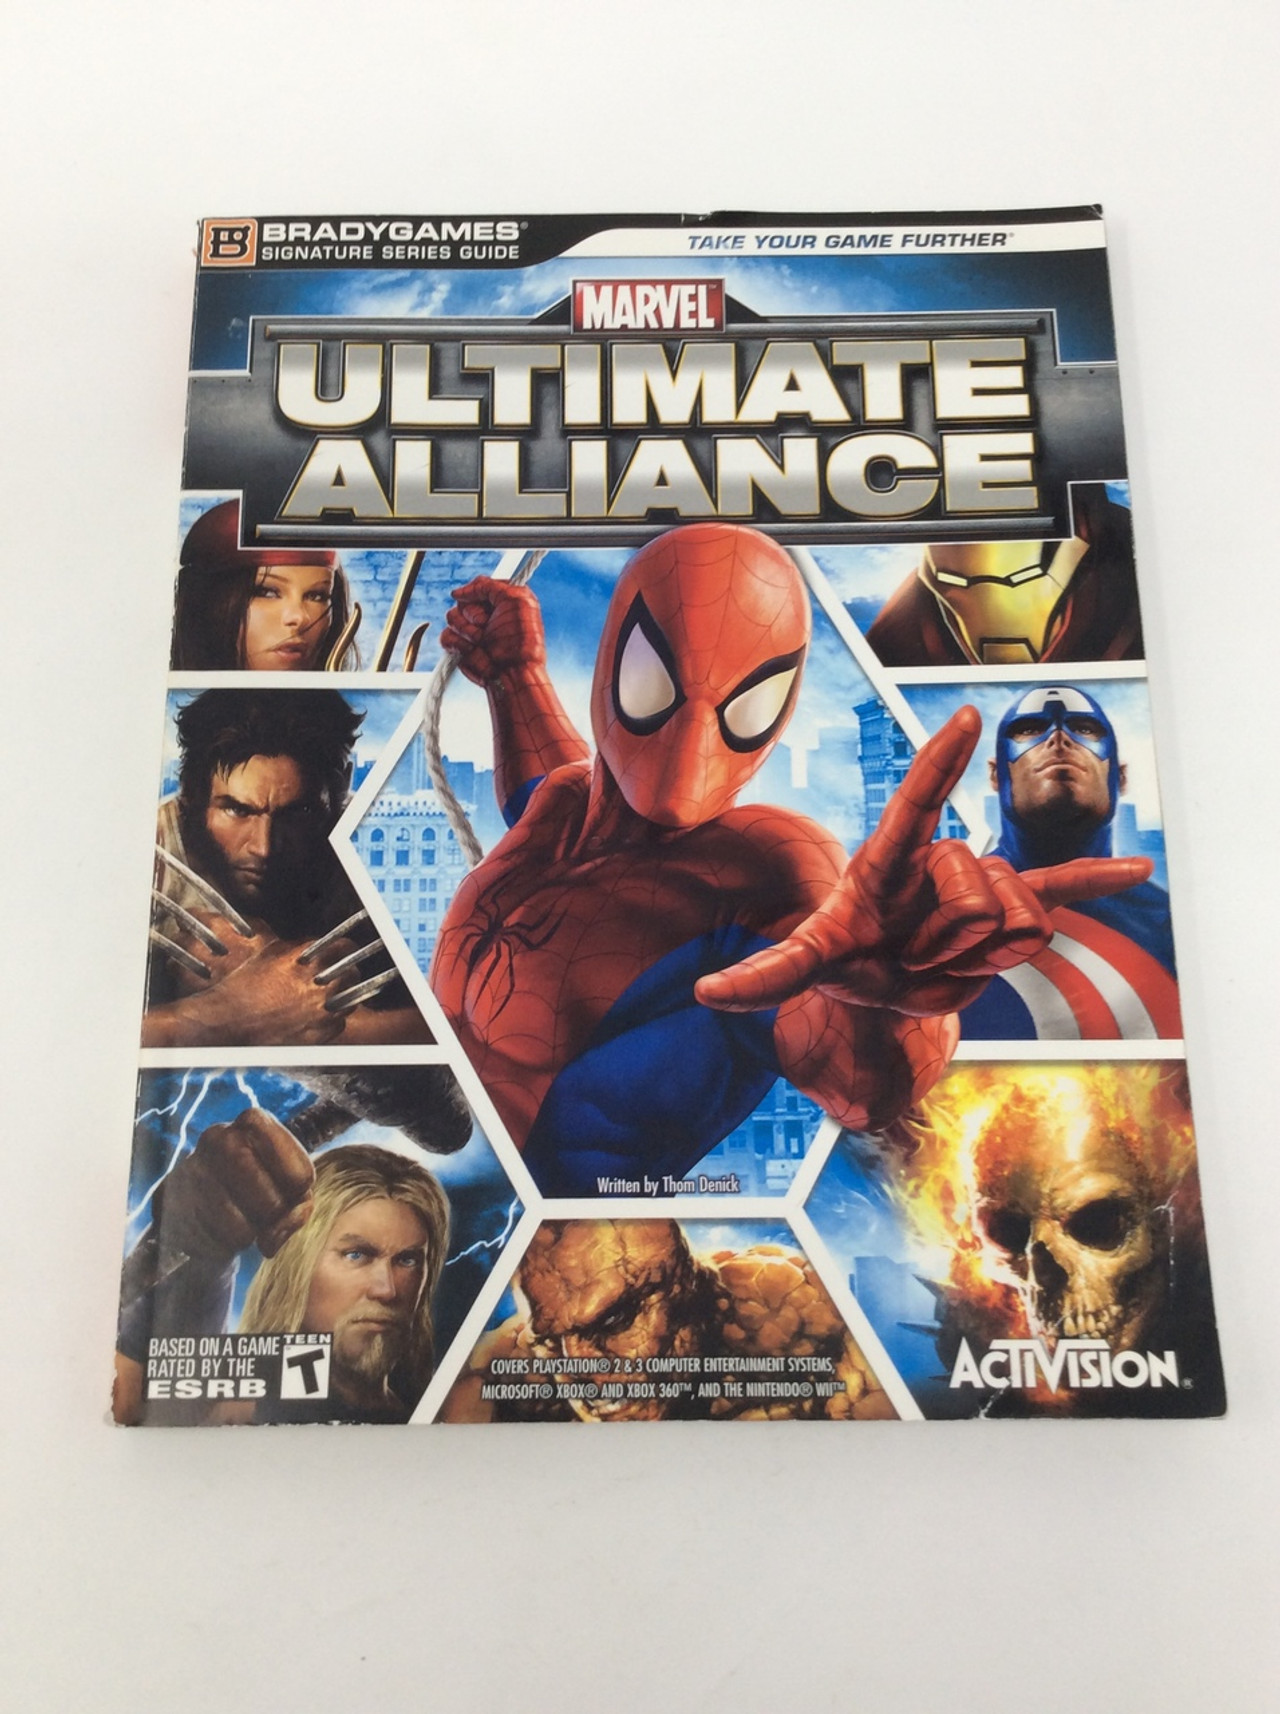 Marvel ultimate alliance (brady games signature series guide.